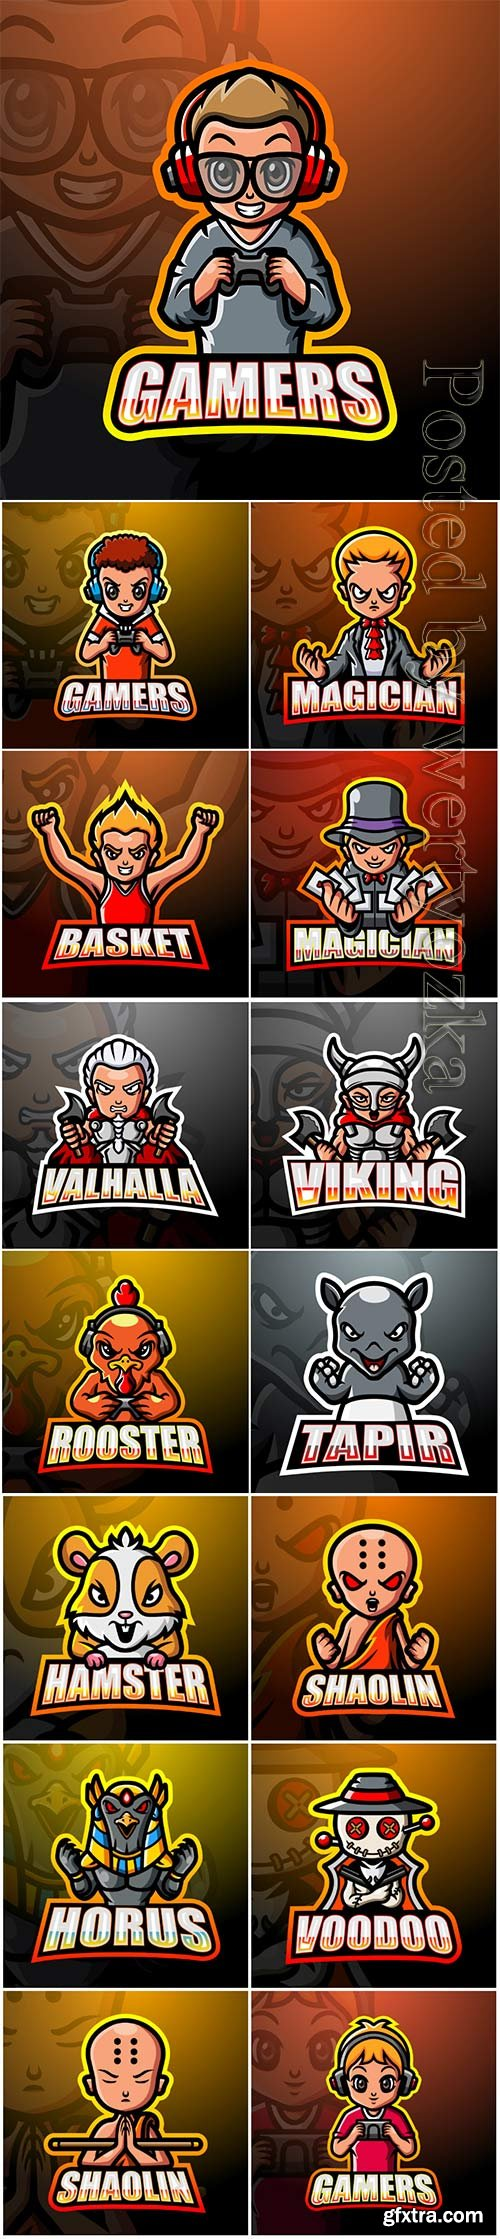 Mascot esport logo design premium vector vol 41